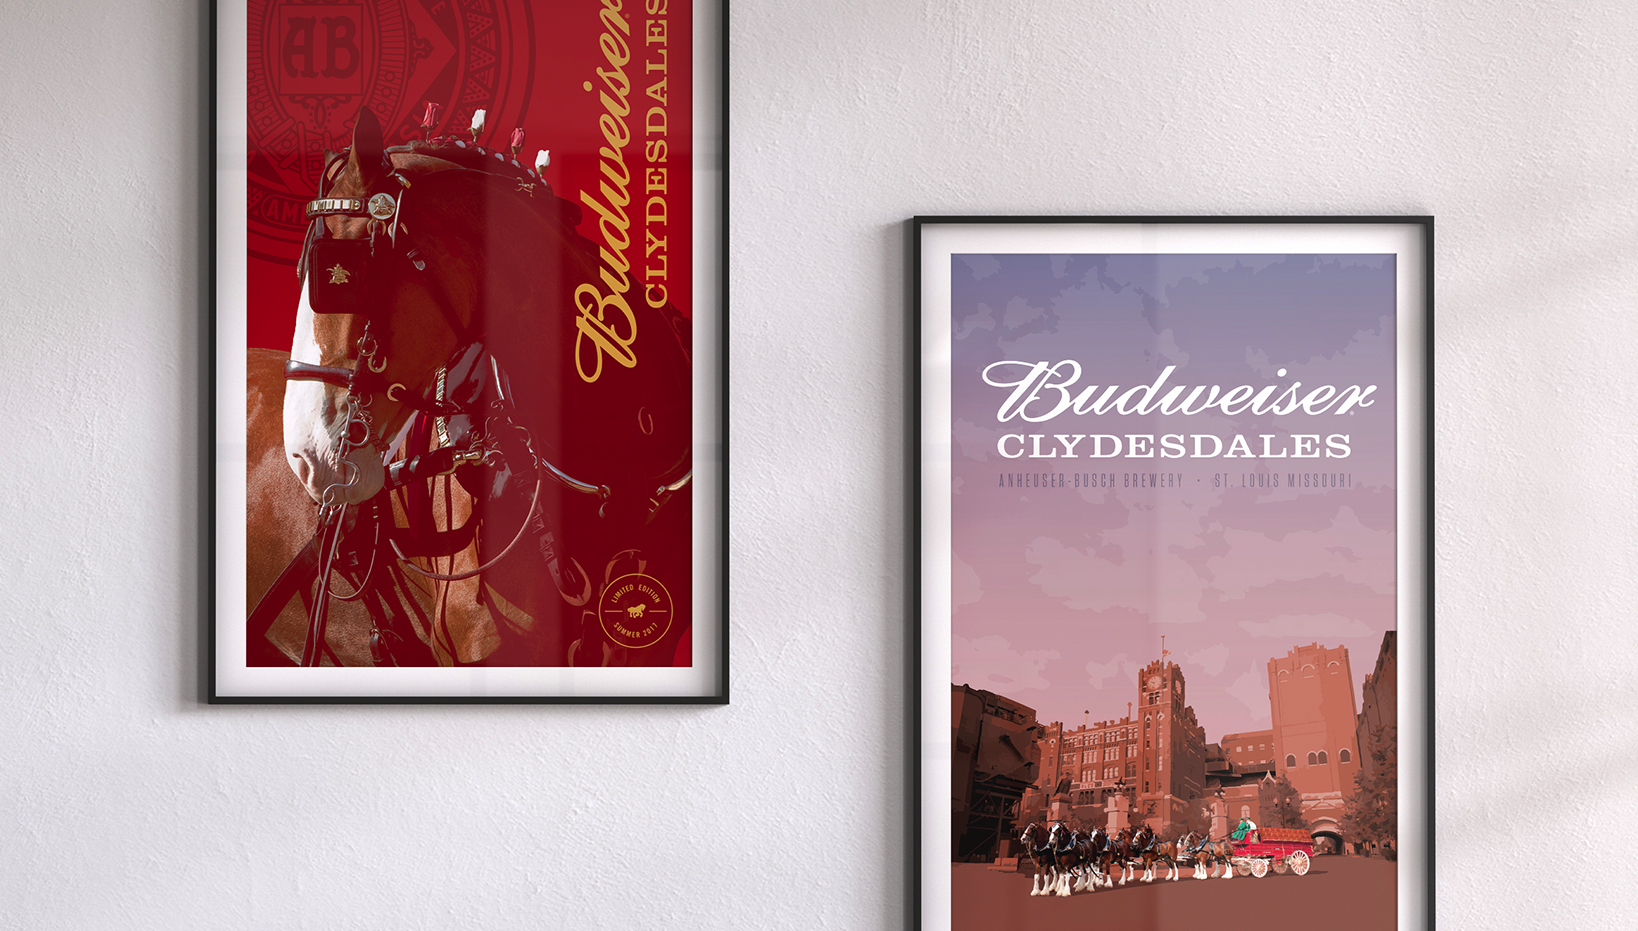 ABInBev Clydesdales – Graphic Design, Merchandise Giveaways